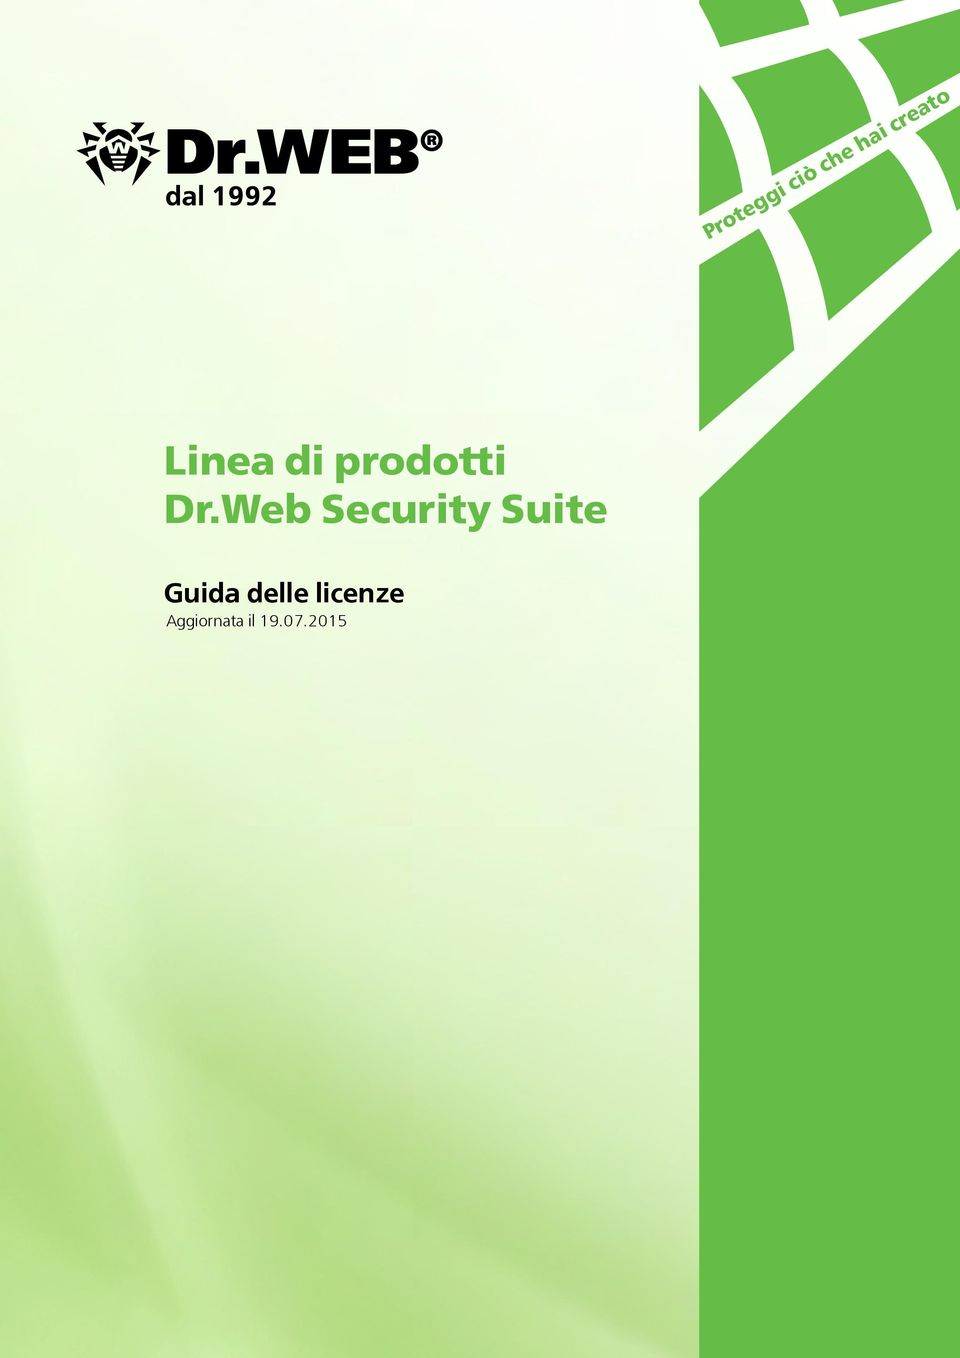 Dr.Web Security Suite